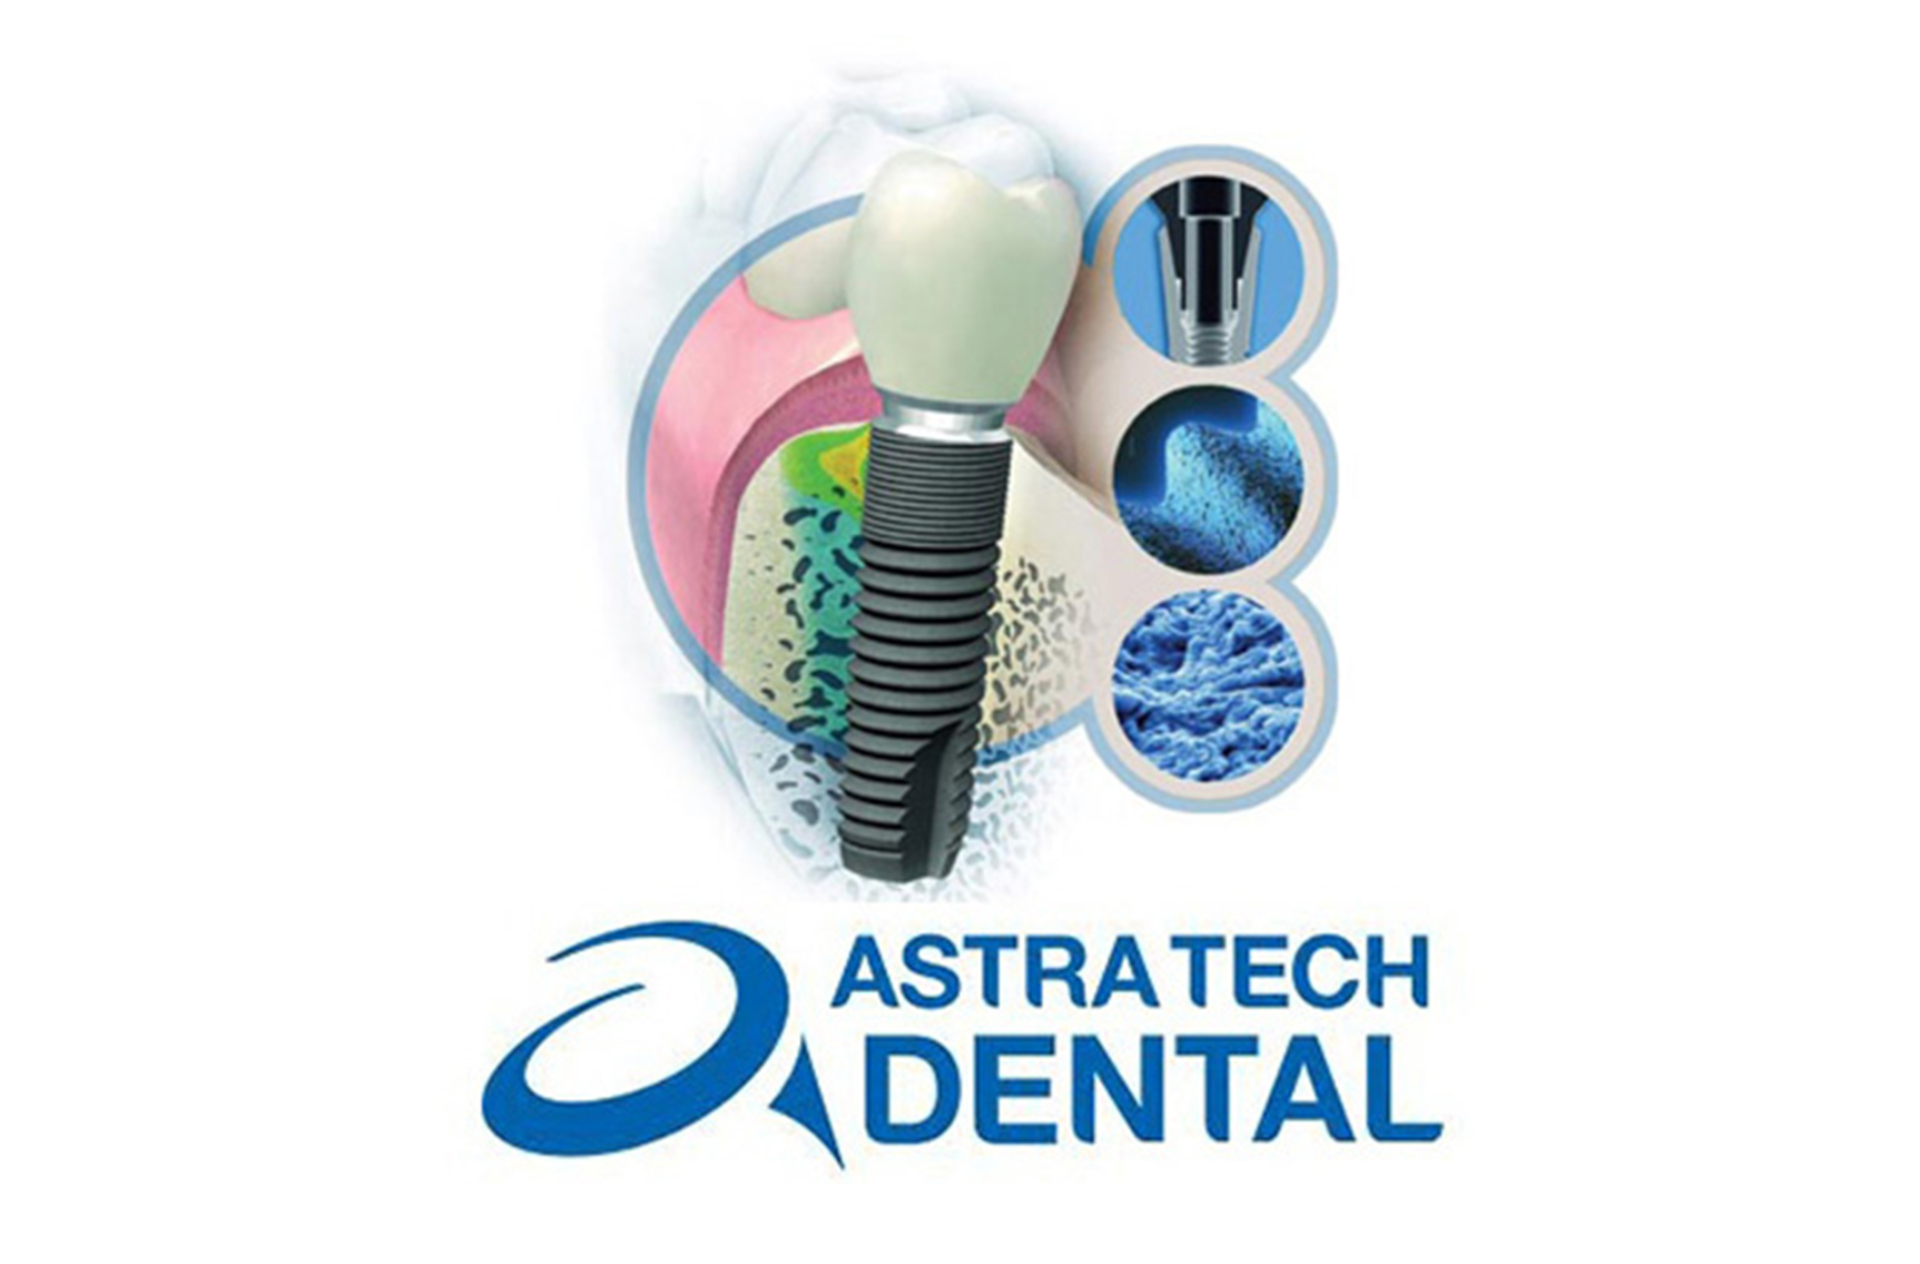 Astra Tech implant insertion